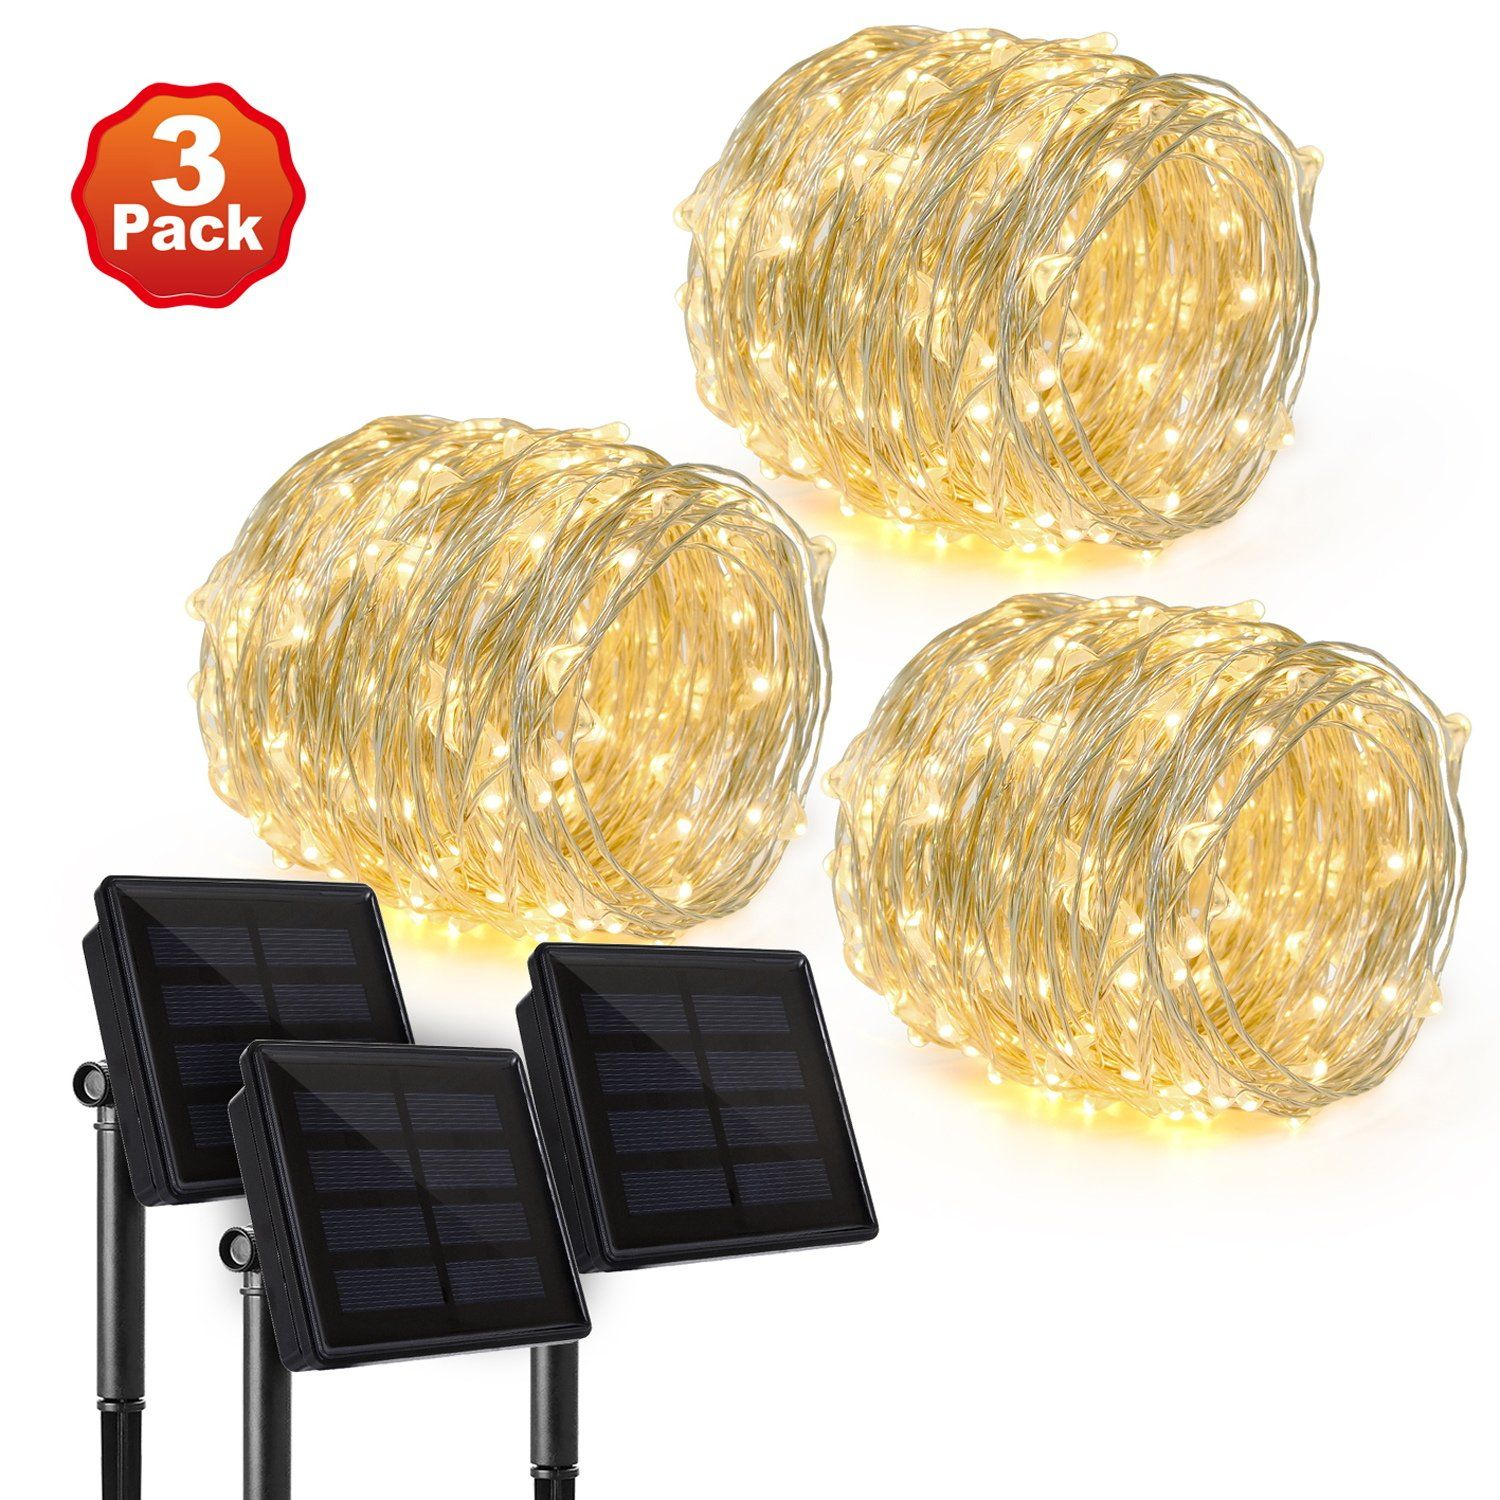 3 Pack Upgraded Rophie 200 Leds Solar String Lights 72 Ft 22m Wiring Garden Powered Copper Wire Outdoor Waterproof Warm White